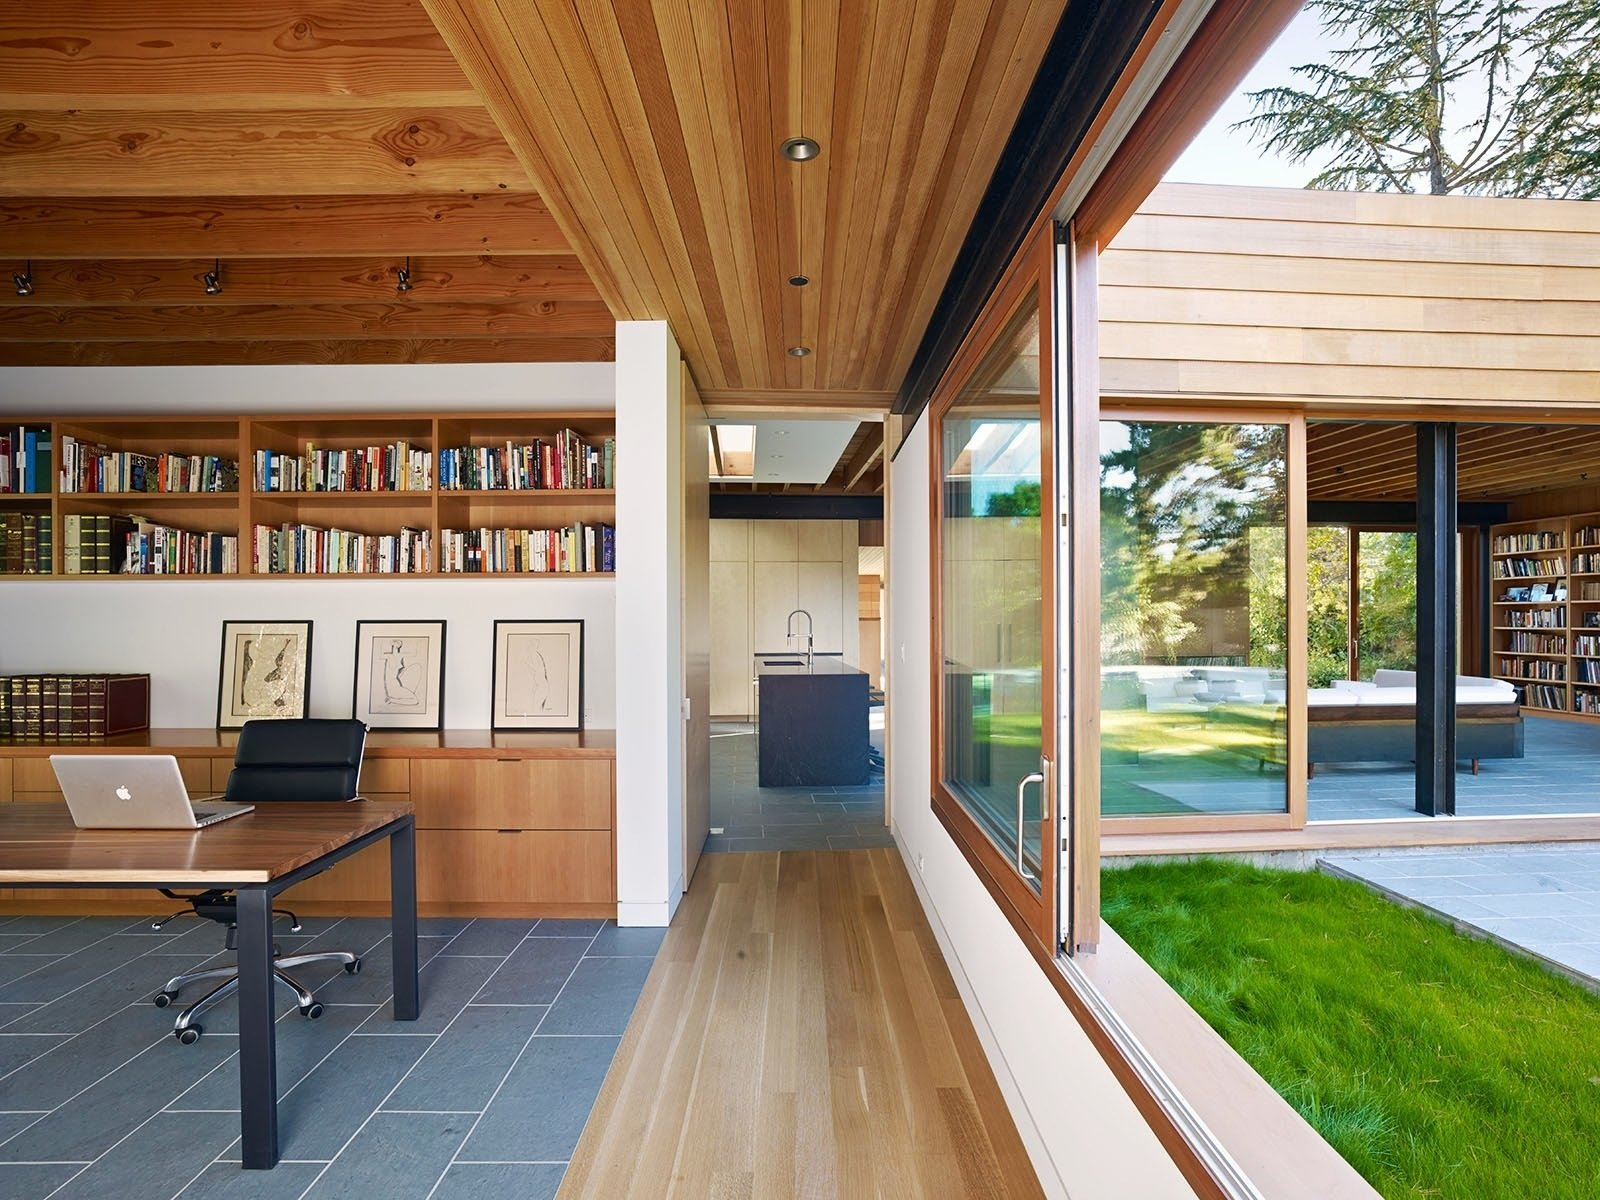 silicon valley smart home spiegel aihara workshop indoor and outdoor